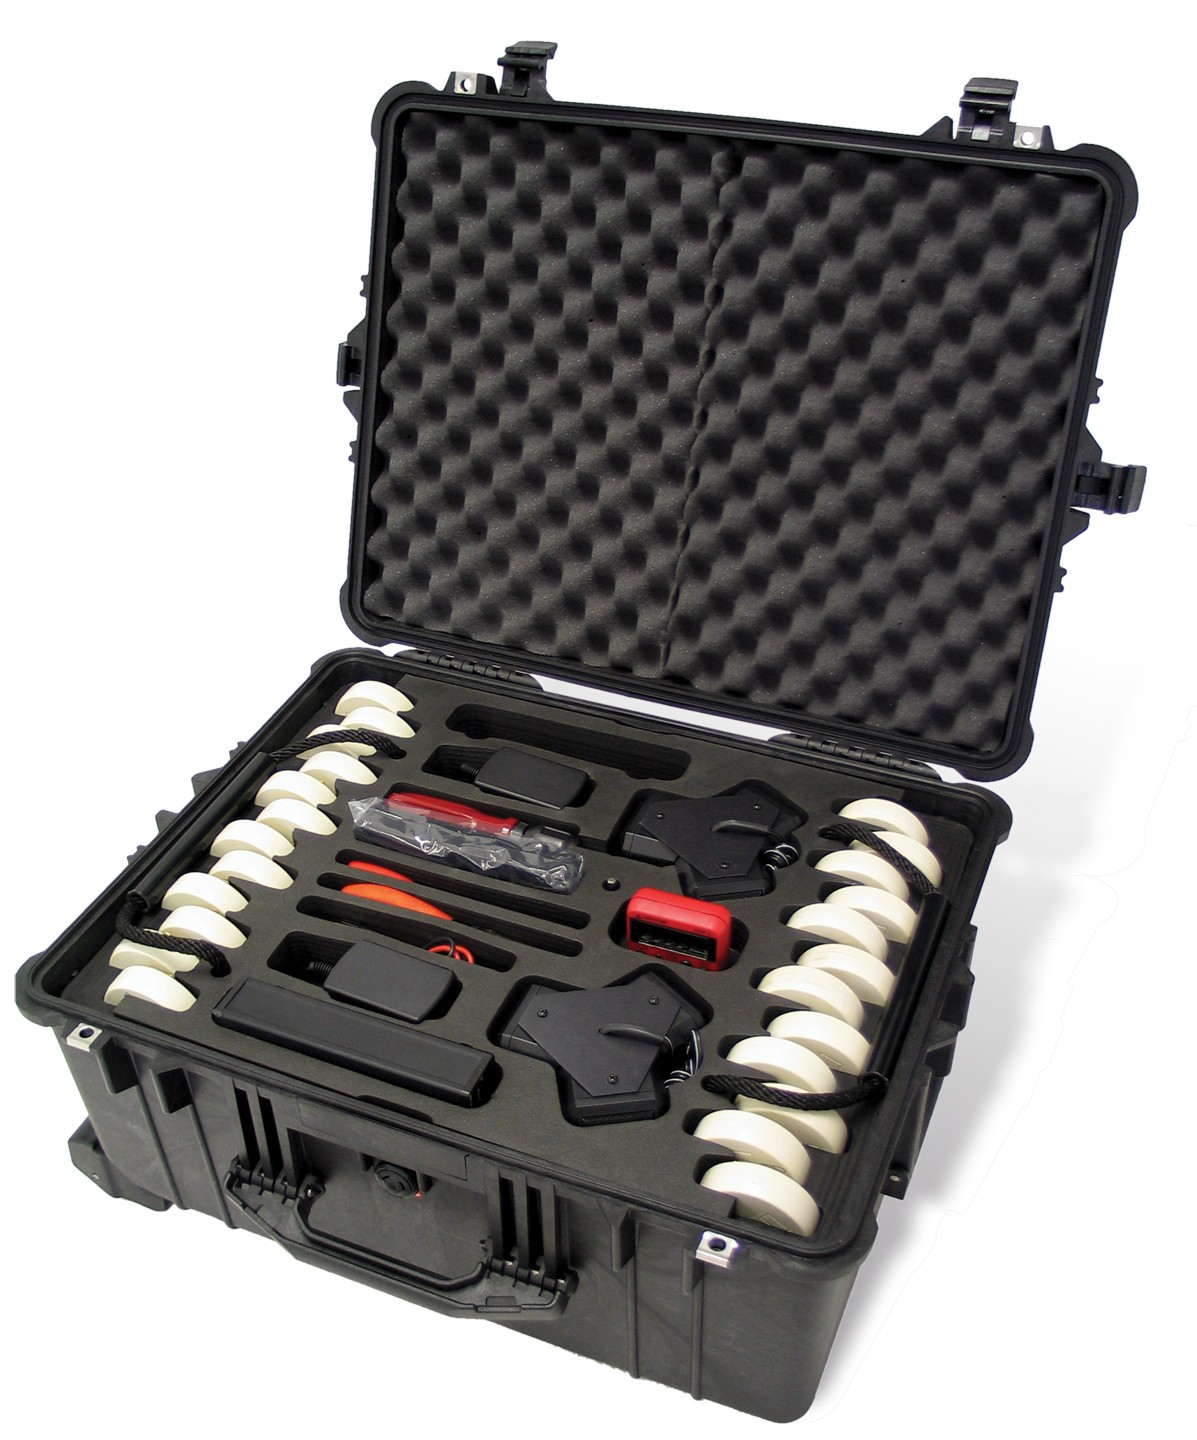 ANG-2200 Acoustic Noise Generator Rapid Deployment Kit